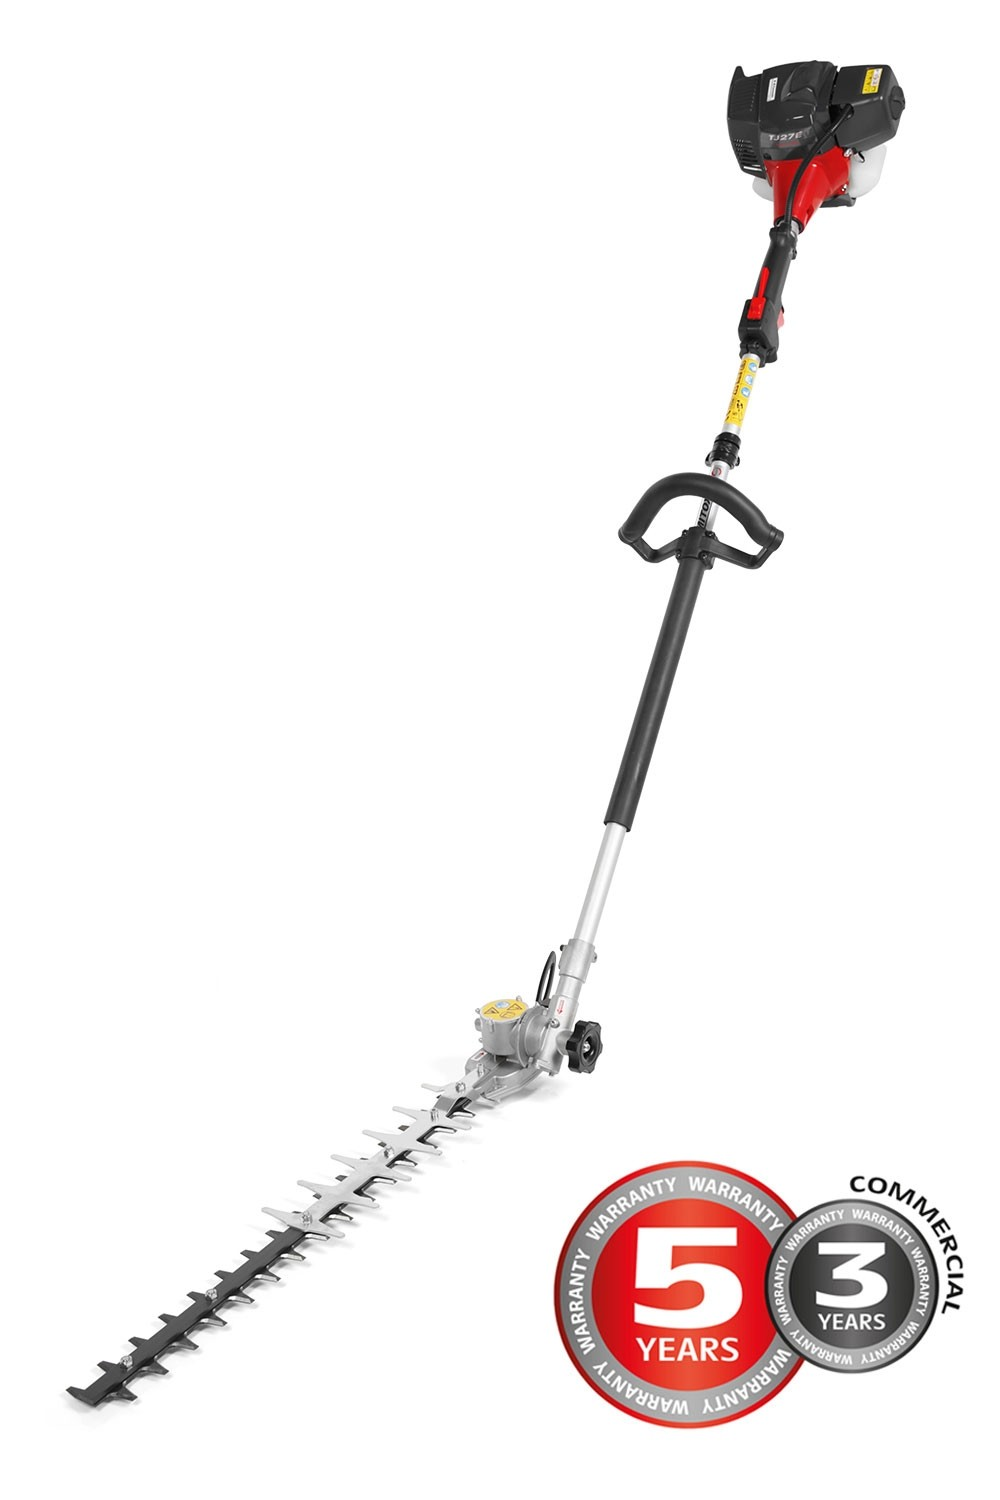 Mitox 5250 LRK PRO long reach hedge trimmer Kawasaki